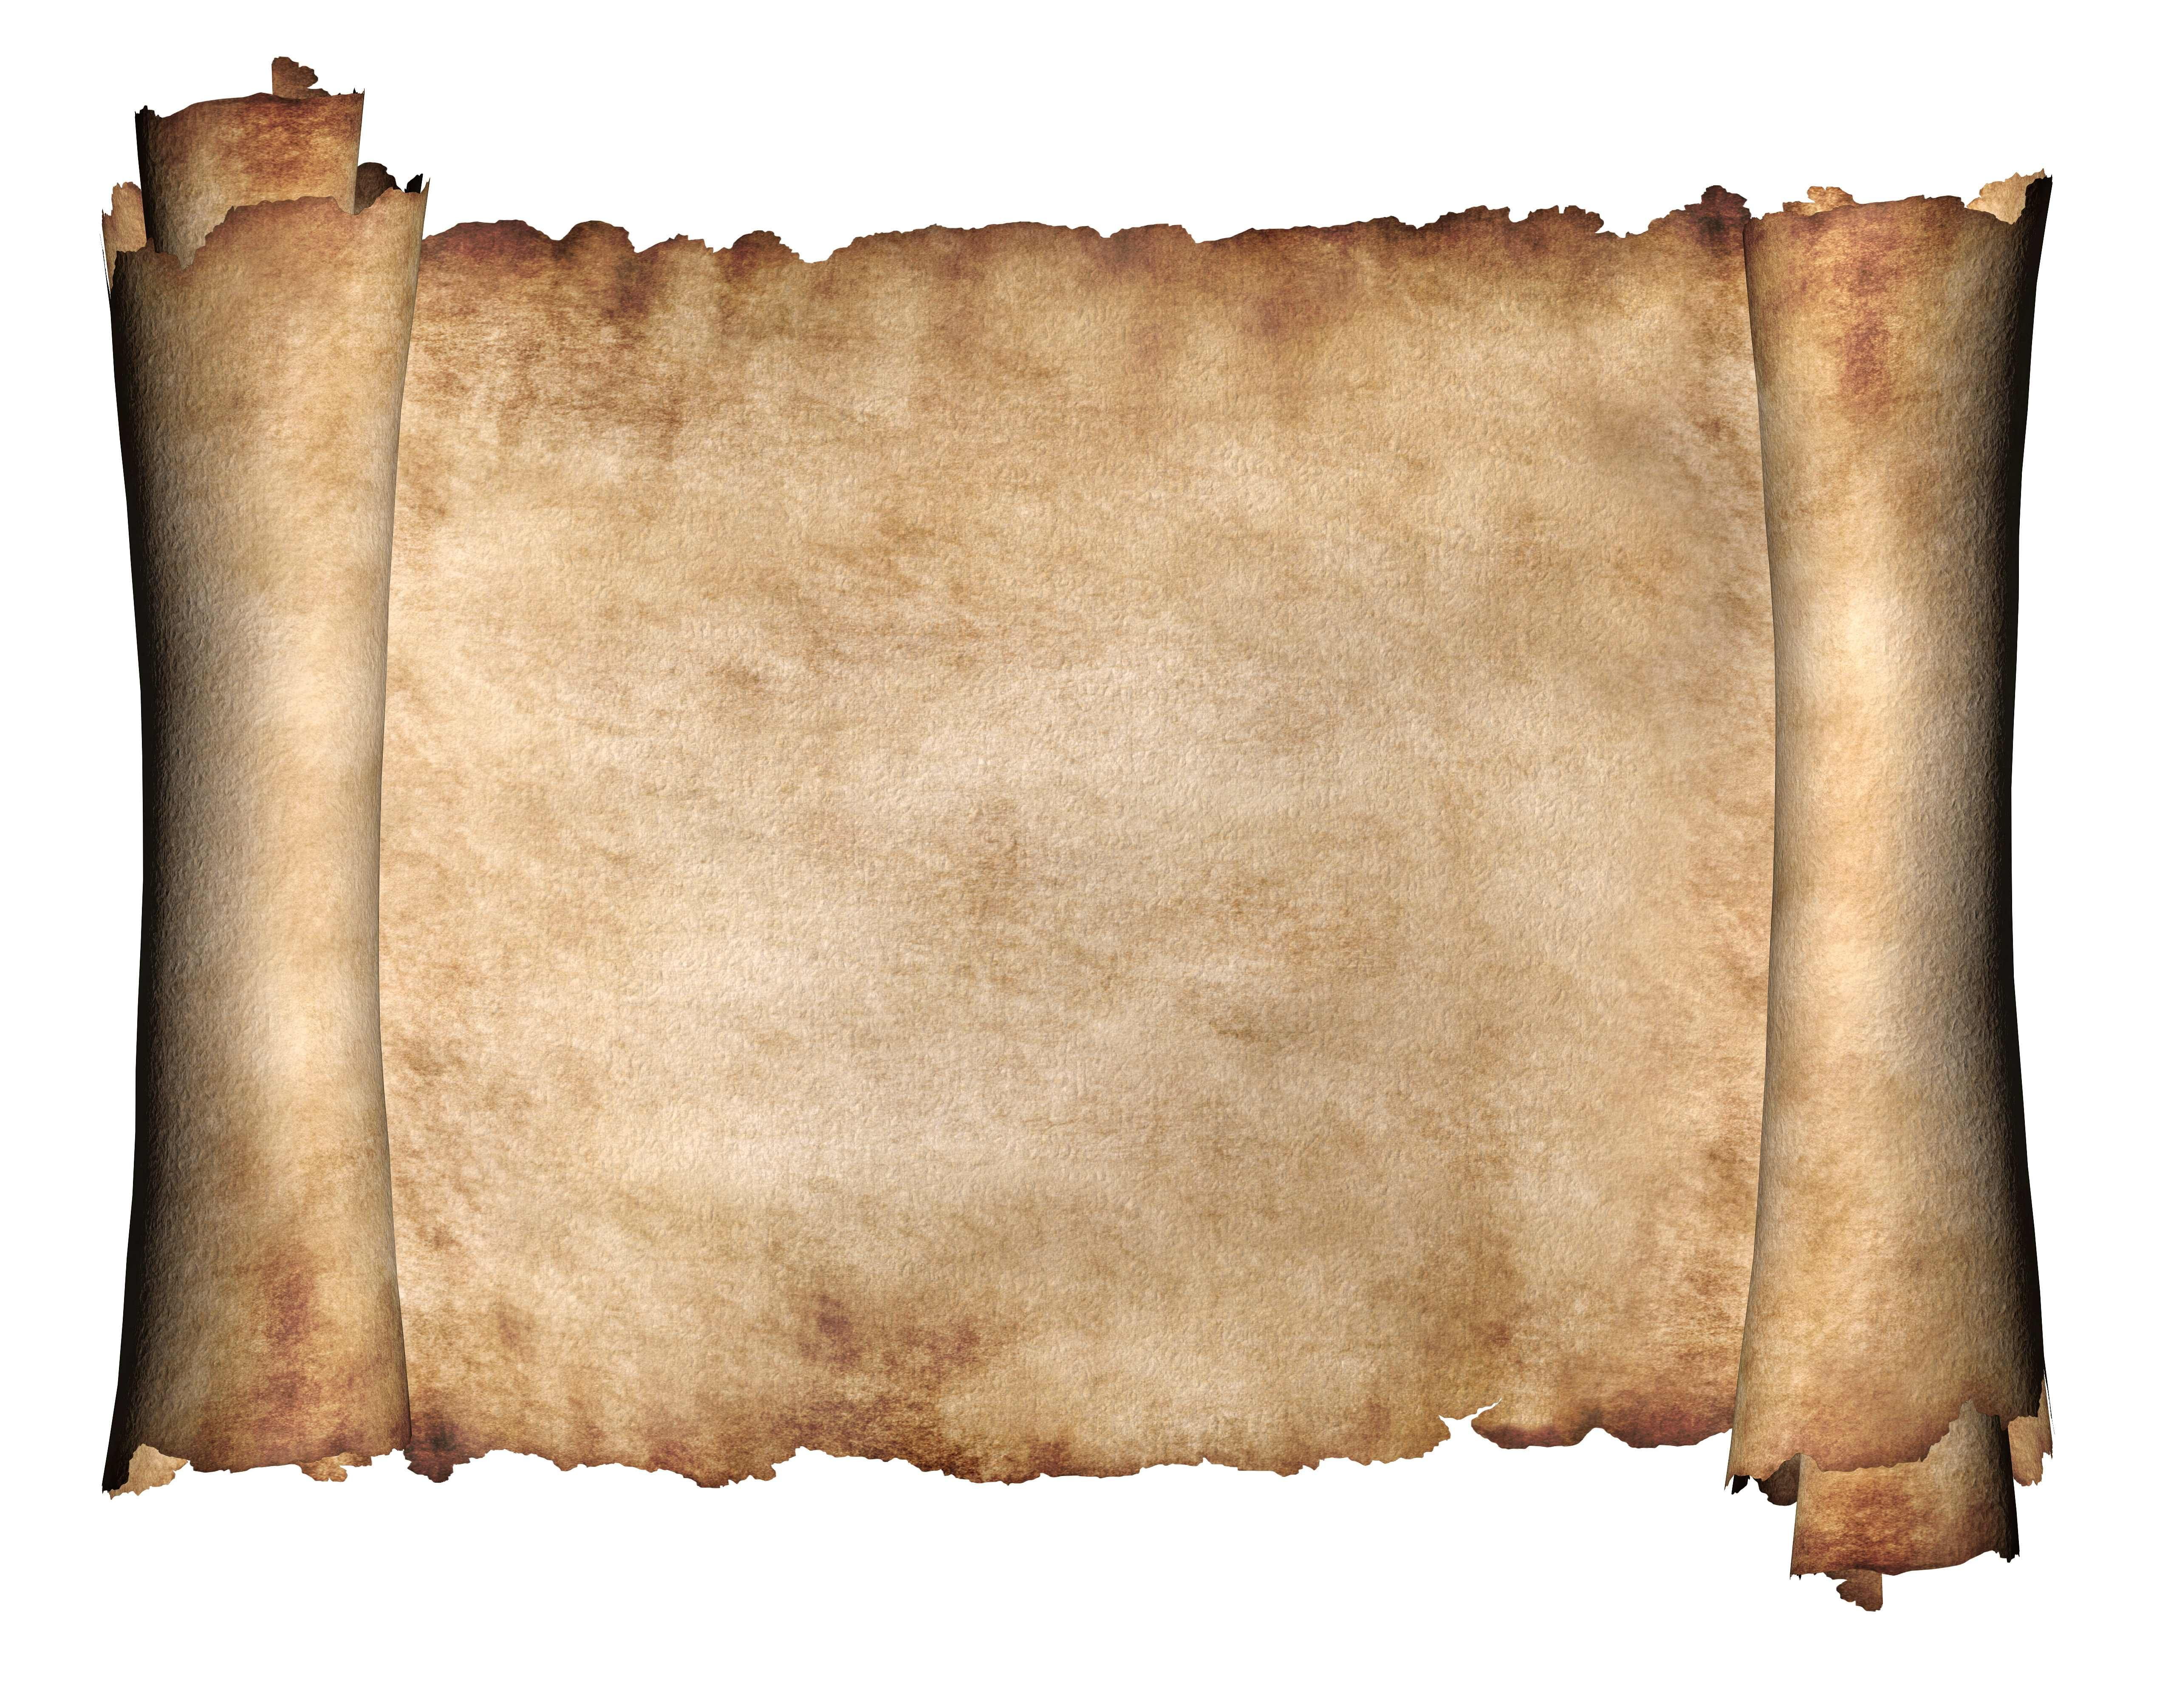 Blank Scroll Create A Treasure Map Use For Invites To Pirate Theme Party Or Other Parchment Paper Texture Pirate Maps Old Paper Background